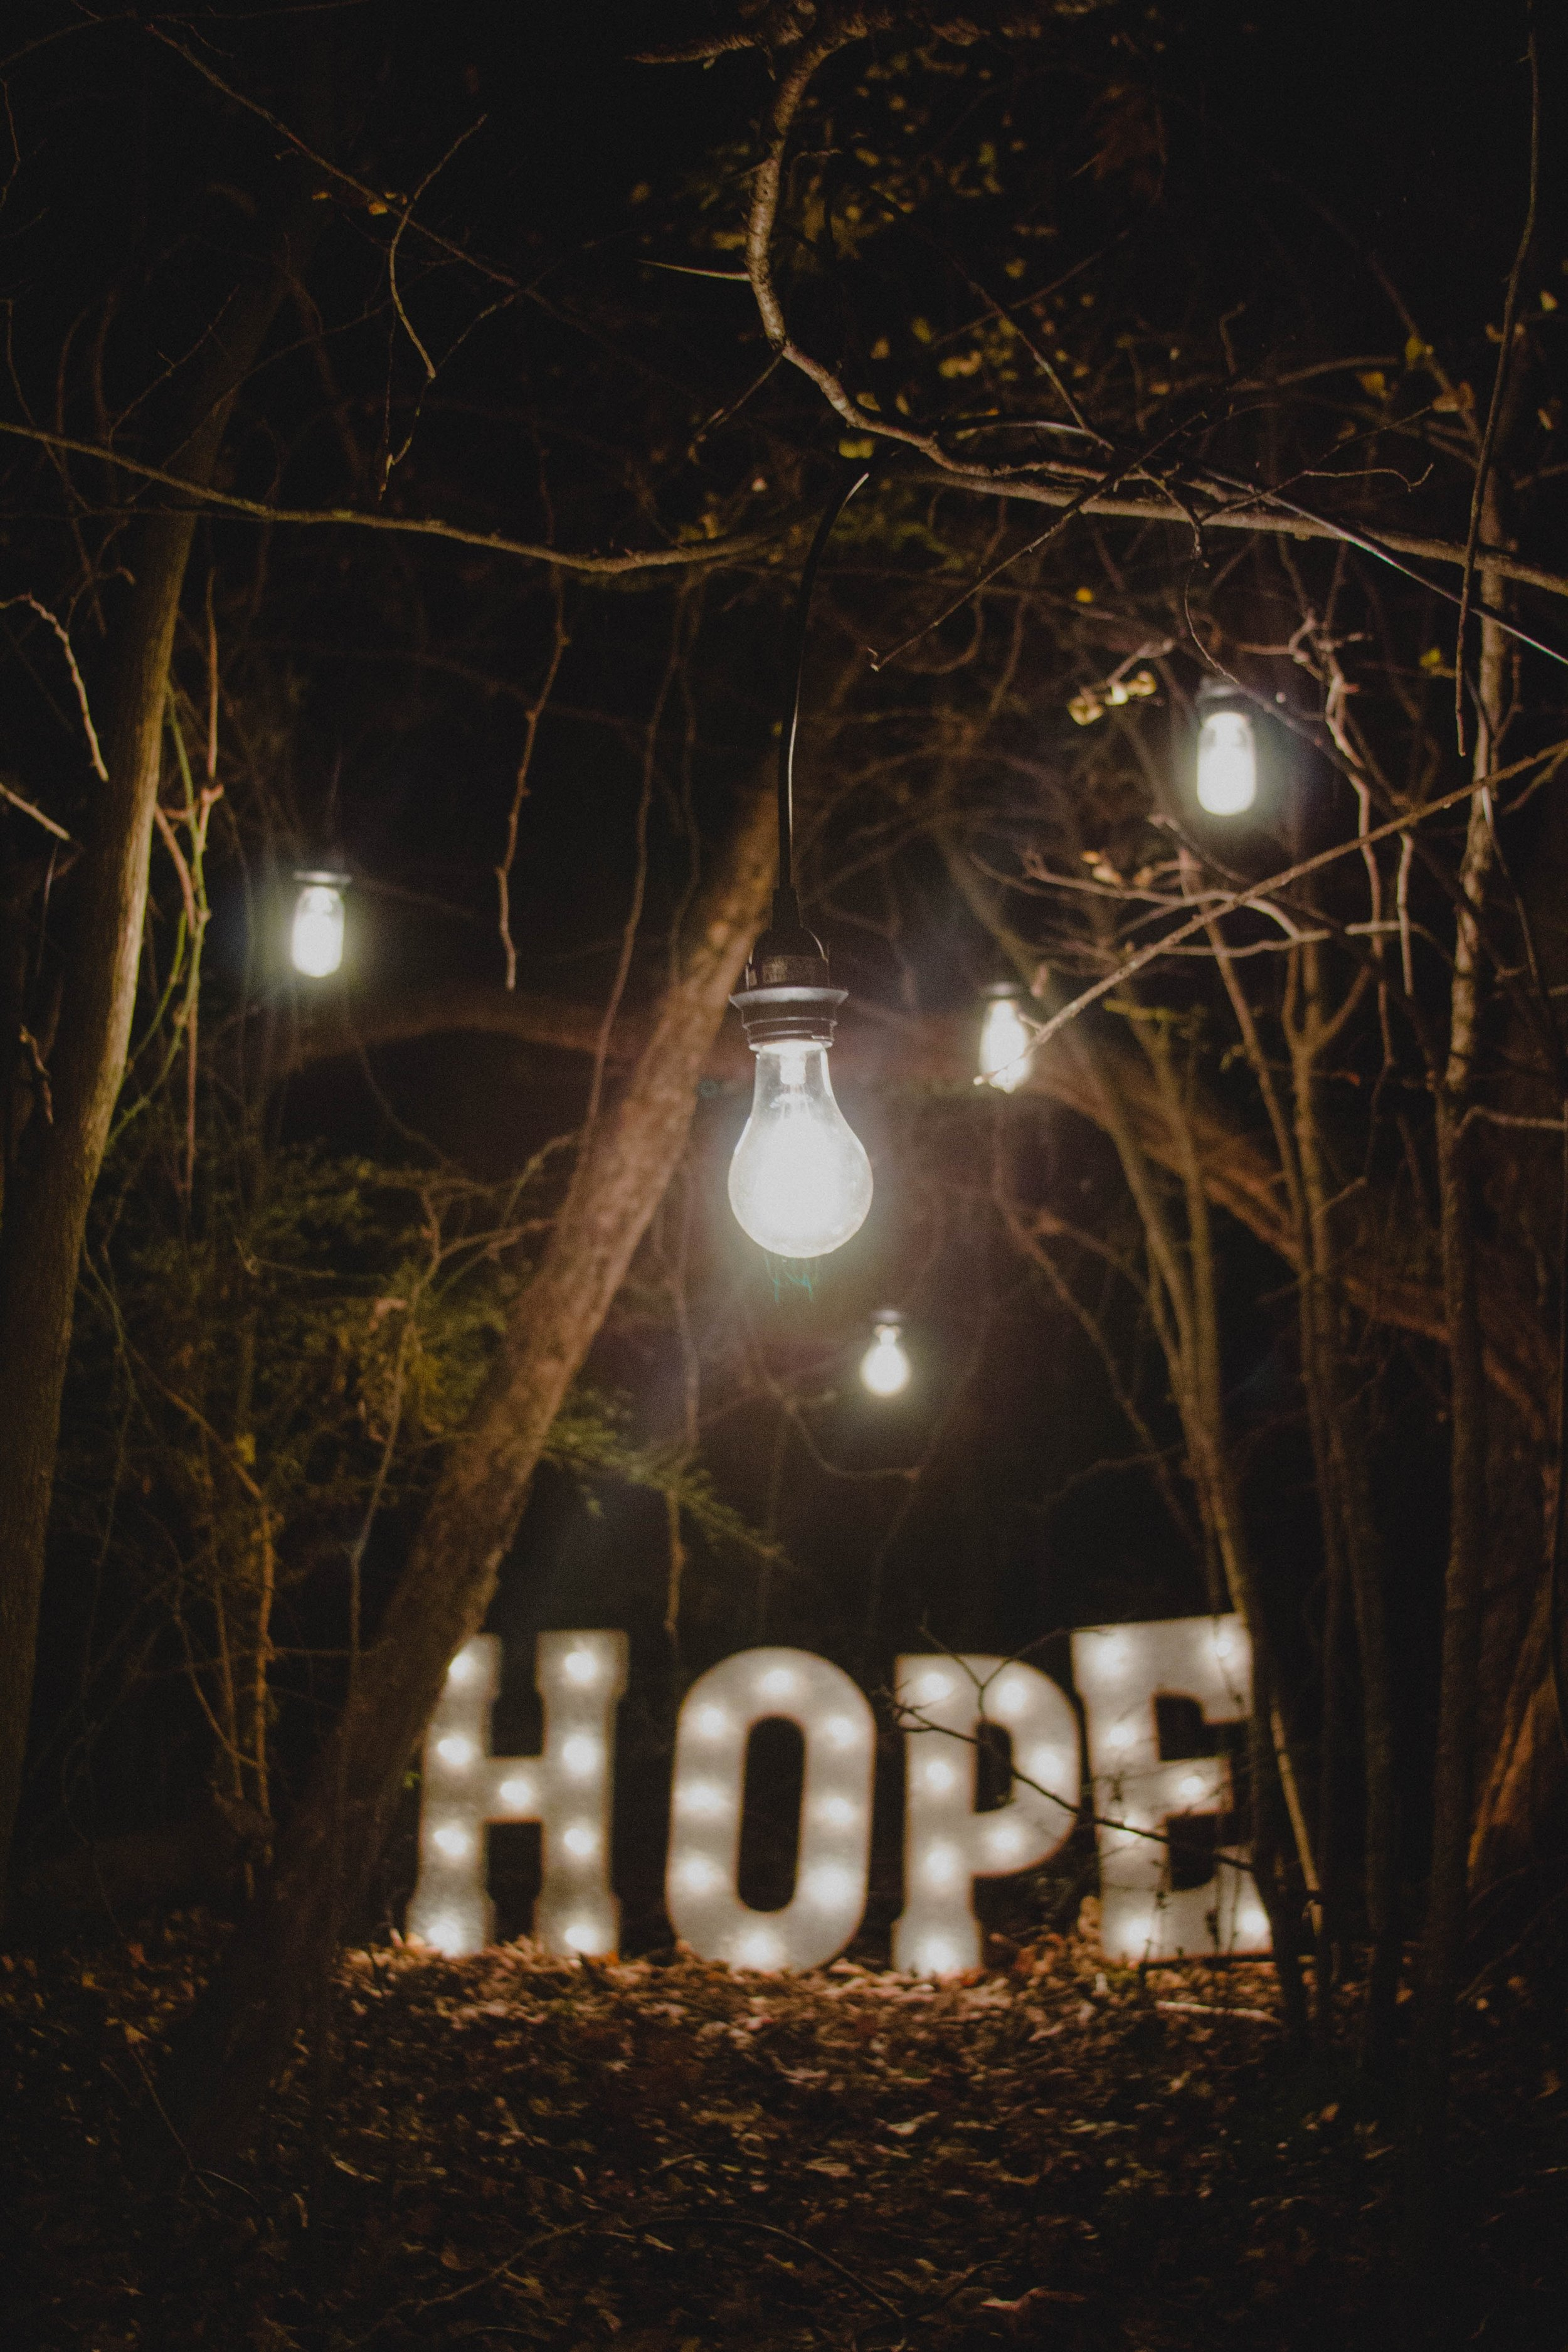 Hope for Dones (and Nones) - The Rise of the Nones and the Exodus of the Dones have created a lot of tension and heated confrontation. It has been a heart breaking transition.But it also fills me with hope!A lot of the issues needed to are being brought into the light and hope flourishes in the light!